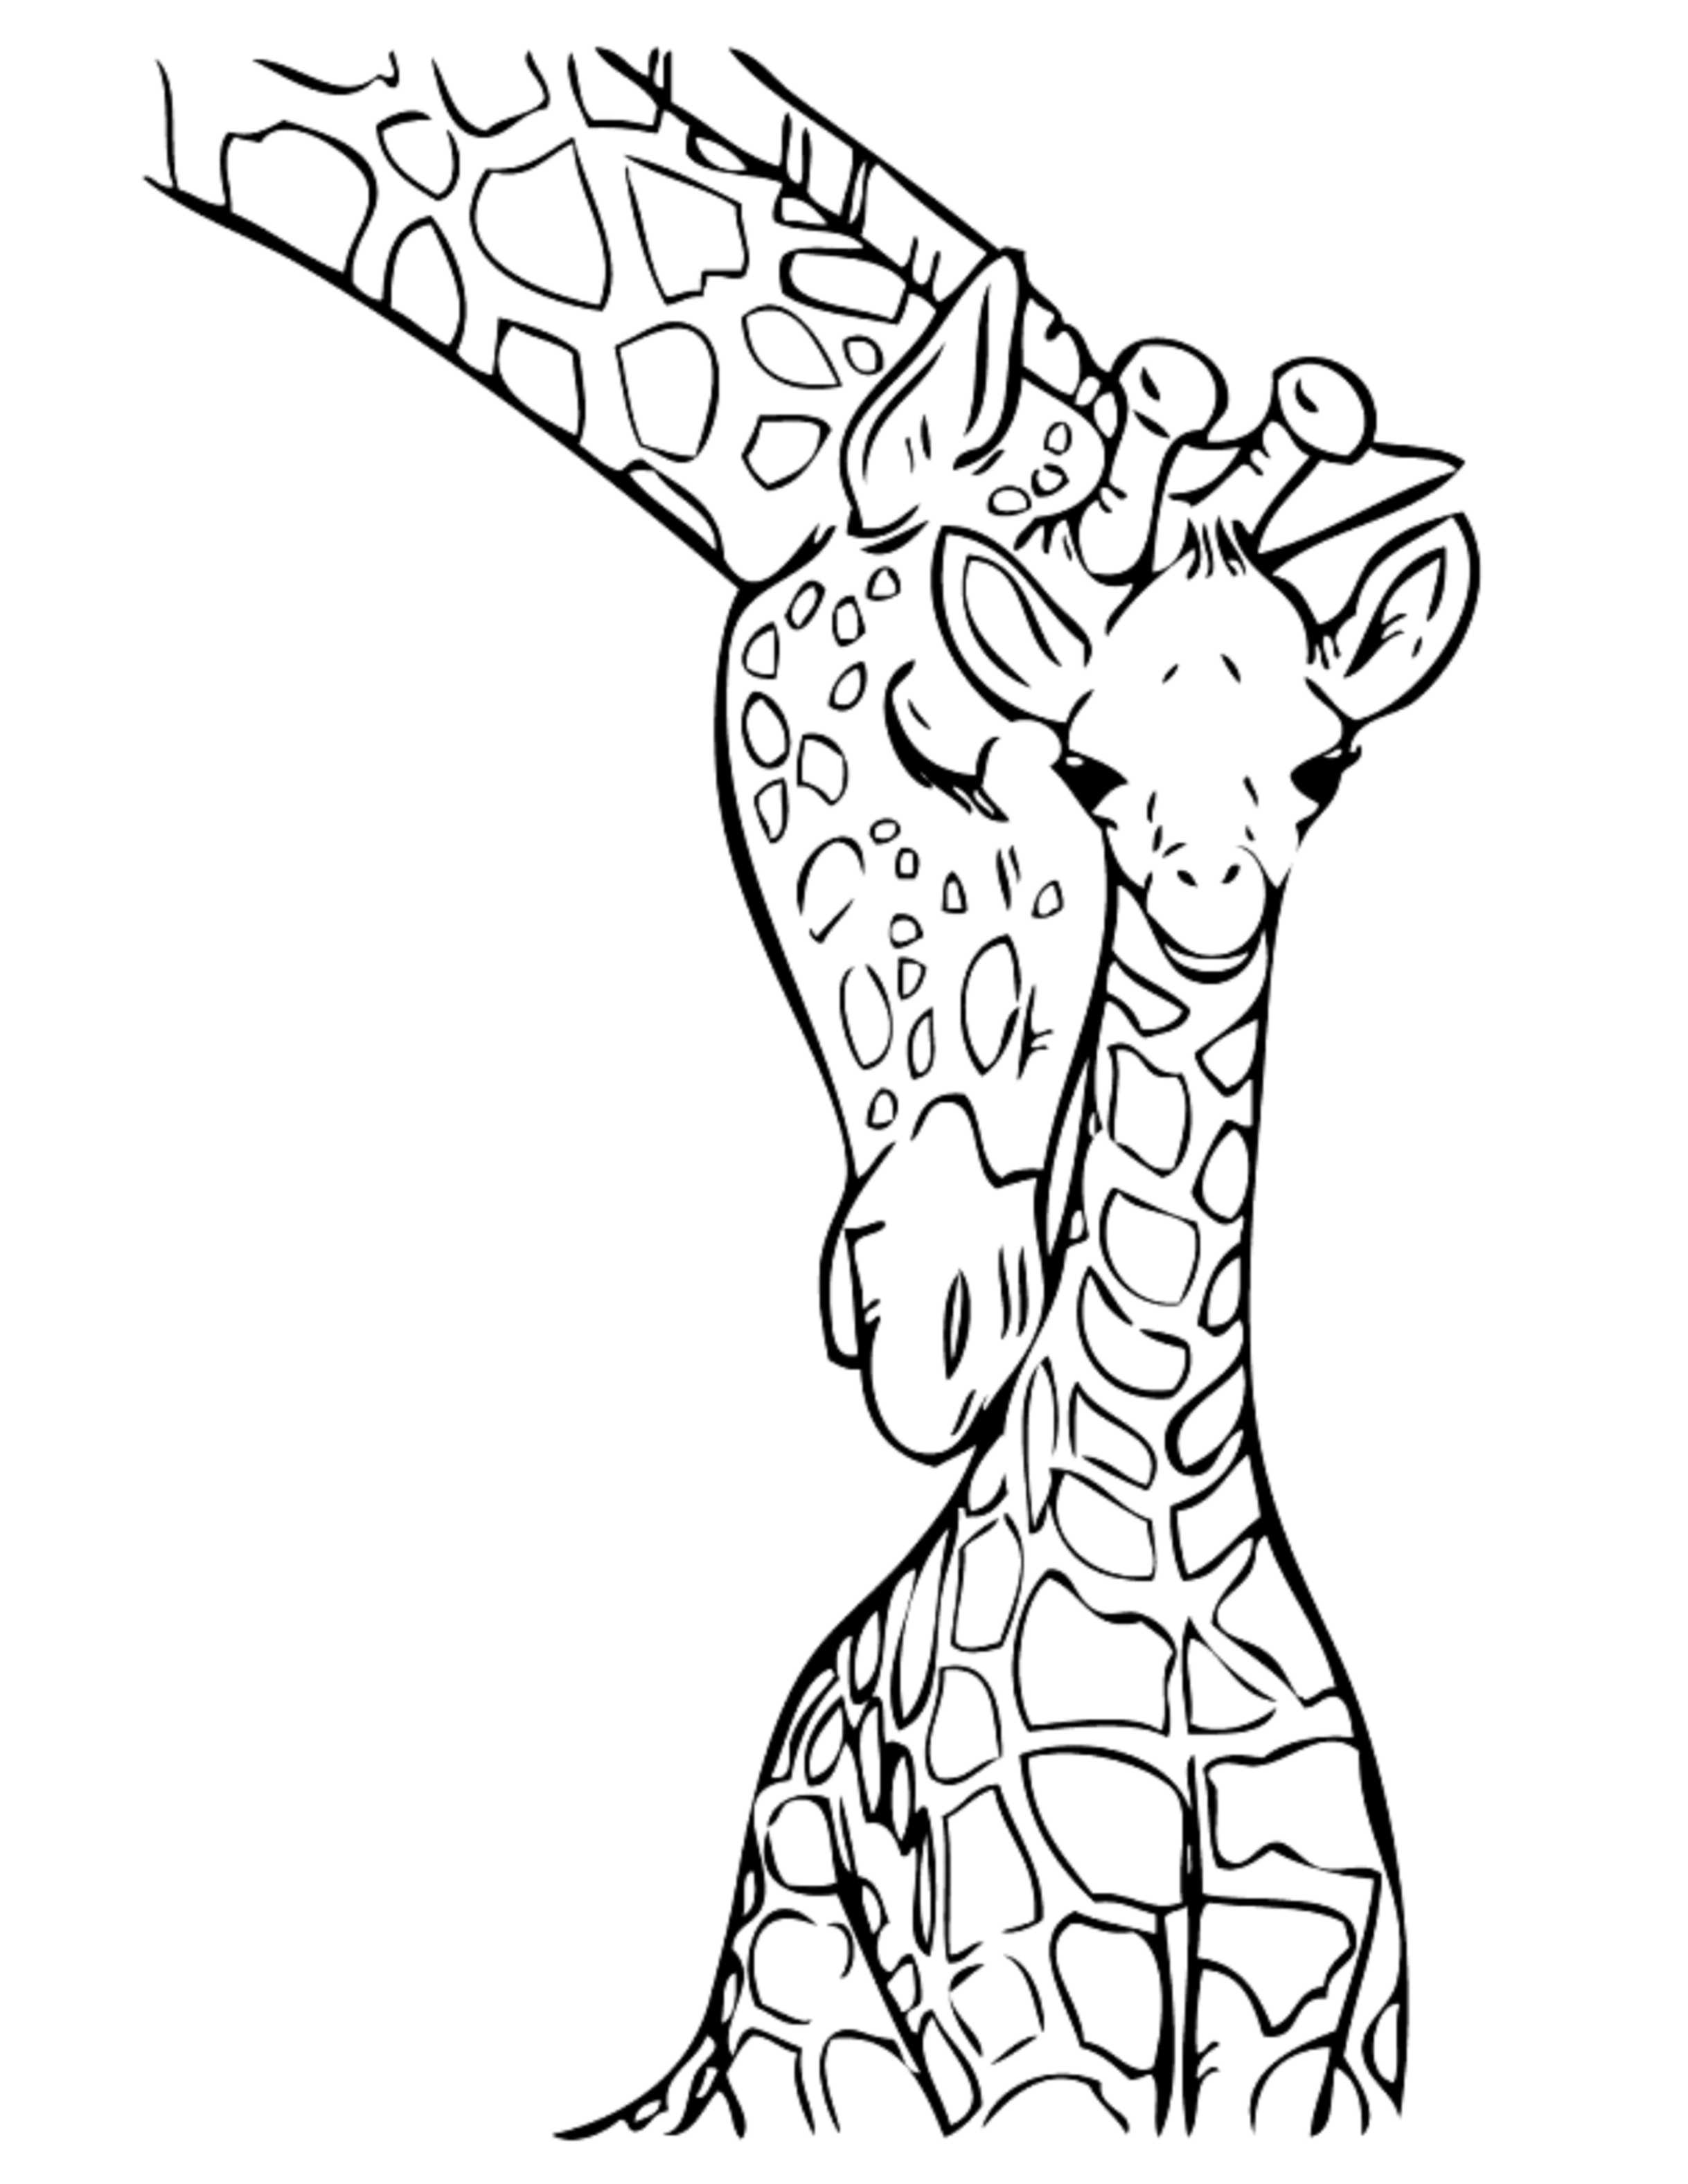 colouring pages of giraffe free giraffe coloring pages pages colouring giraffe of